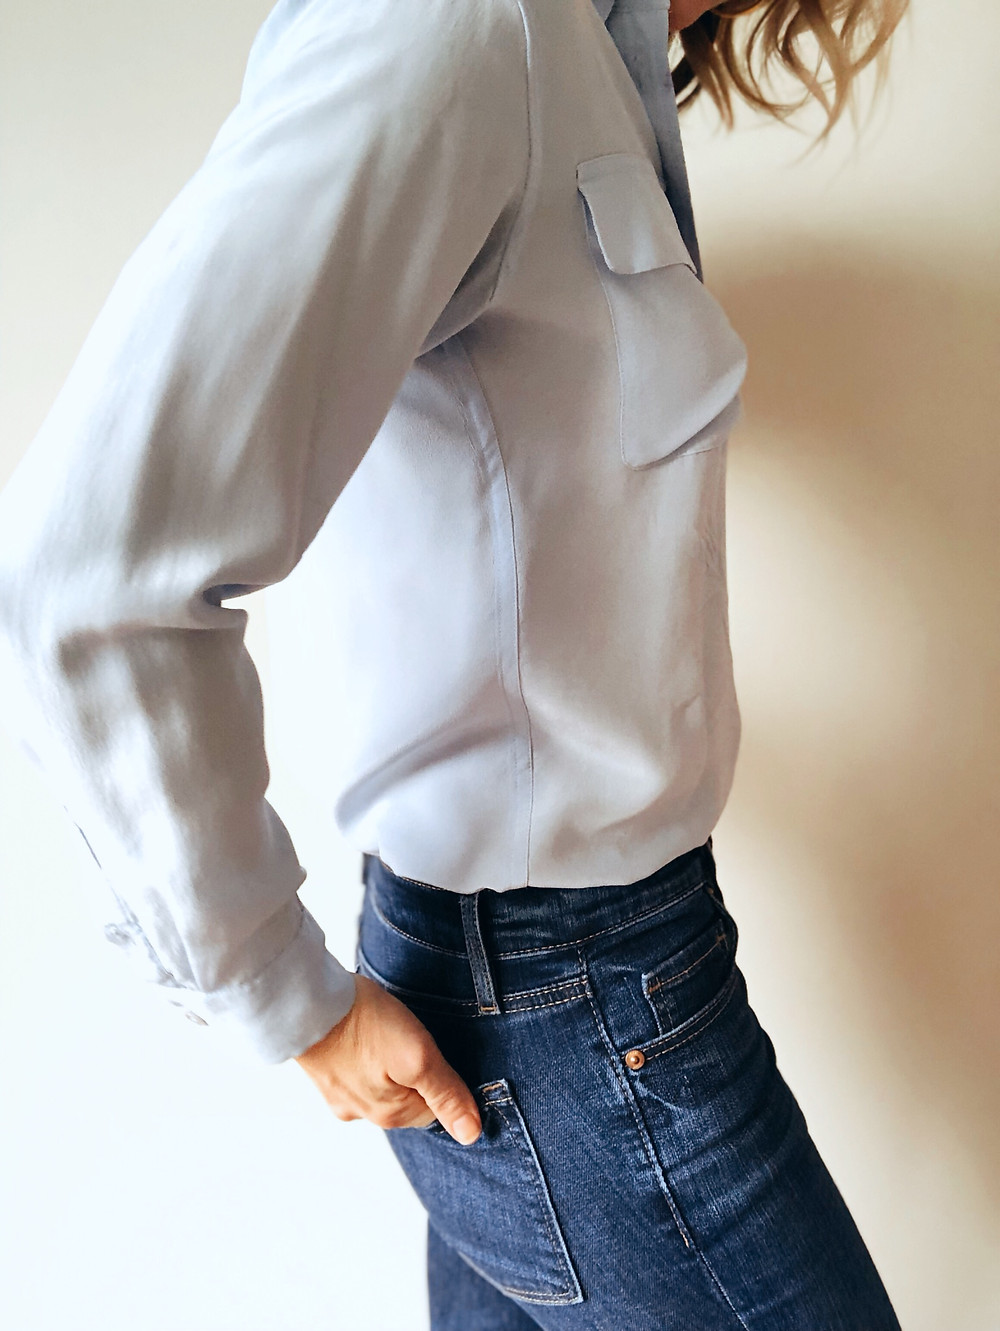 Side view of silk blouse and blue jeans.